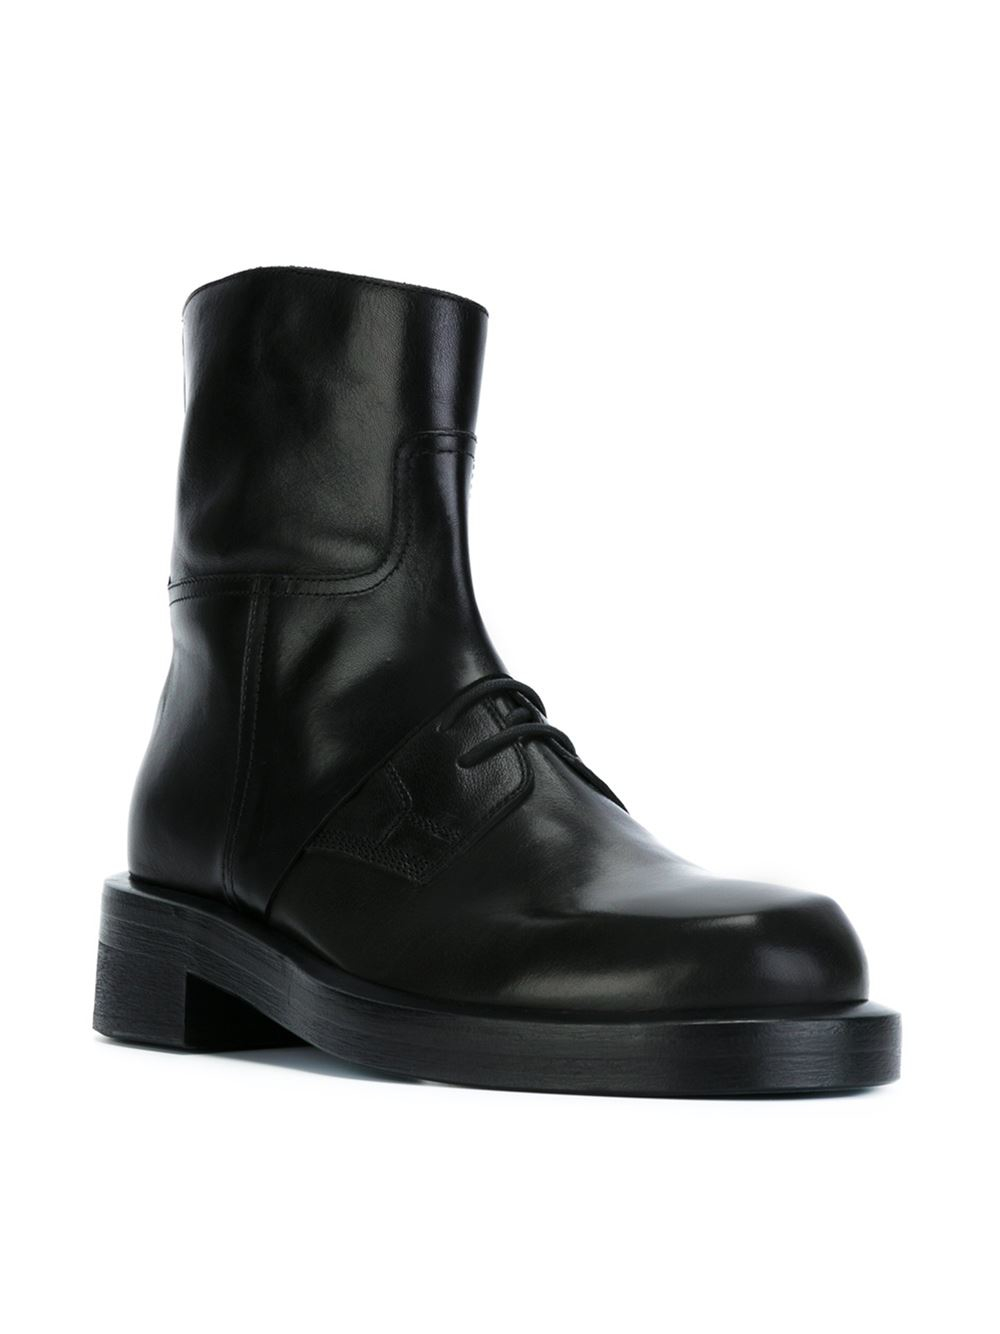 Ann Demeulemeester black patent leather chunky lace-up boots 2015 online latest collections sale online discount Manchester find great for sale visit online u0oUh0